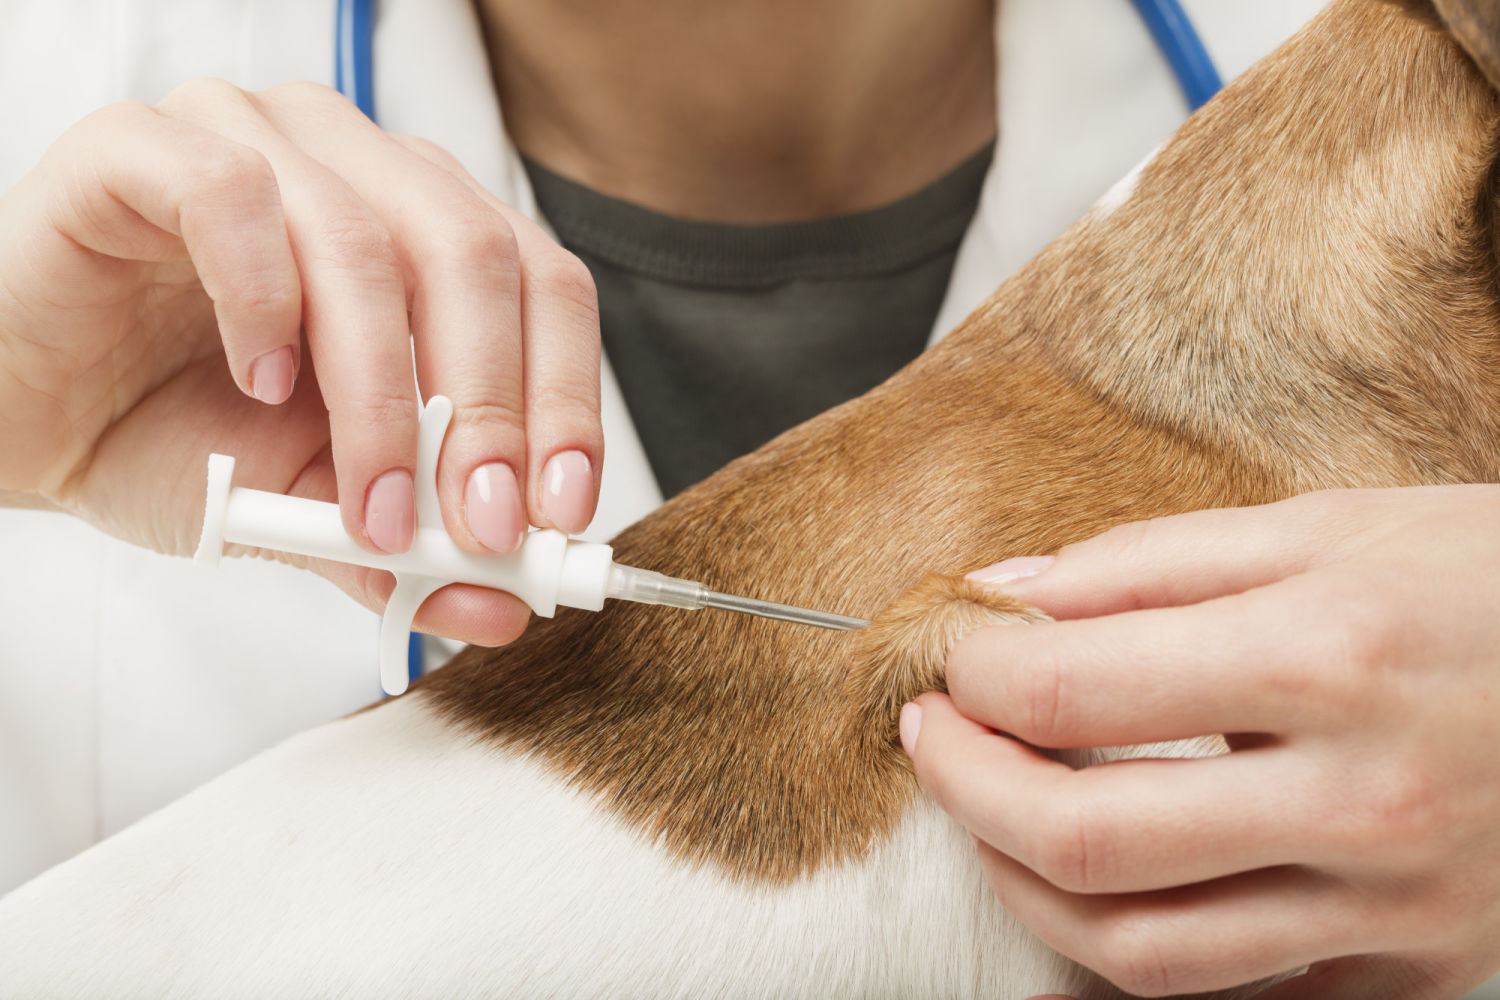 The pet microchipping procedure is relatively quick and easy